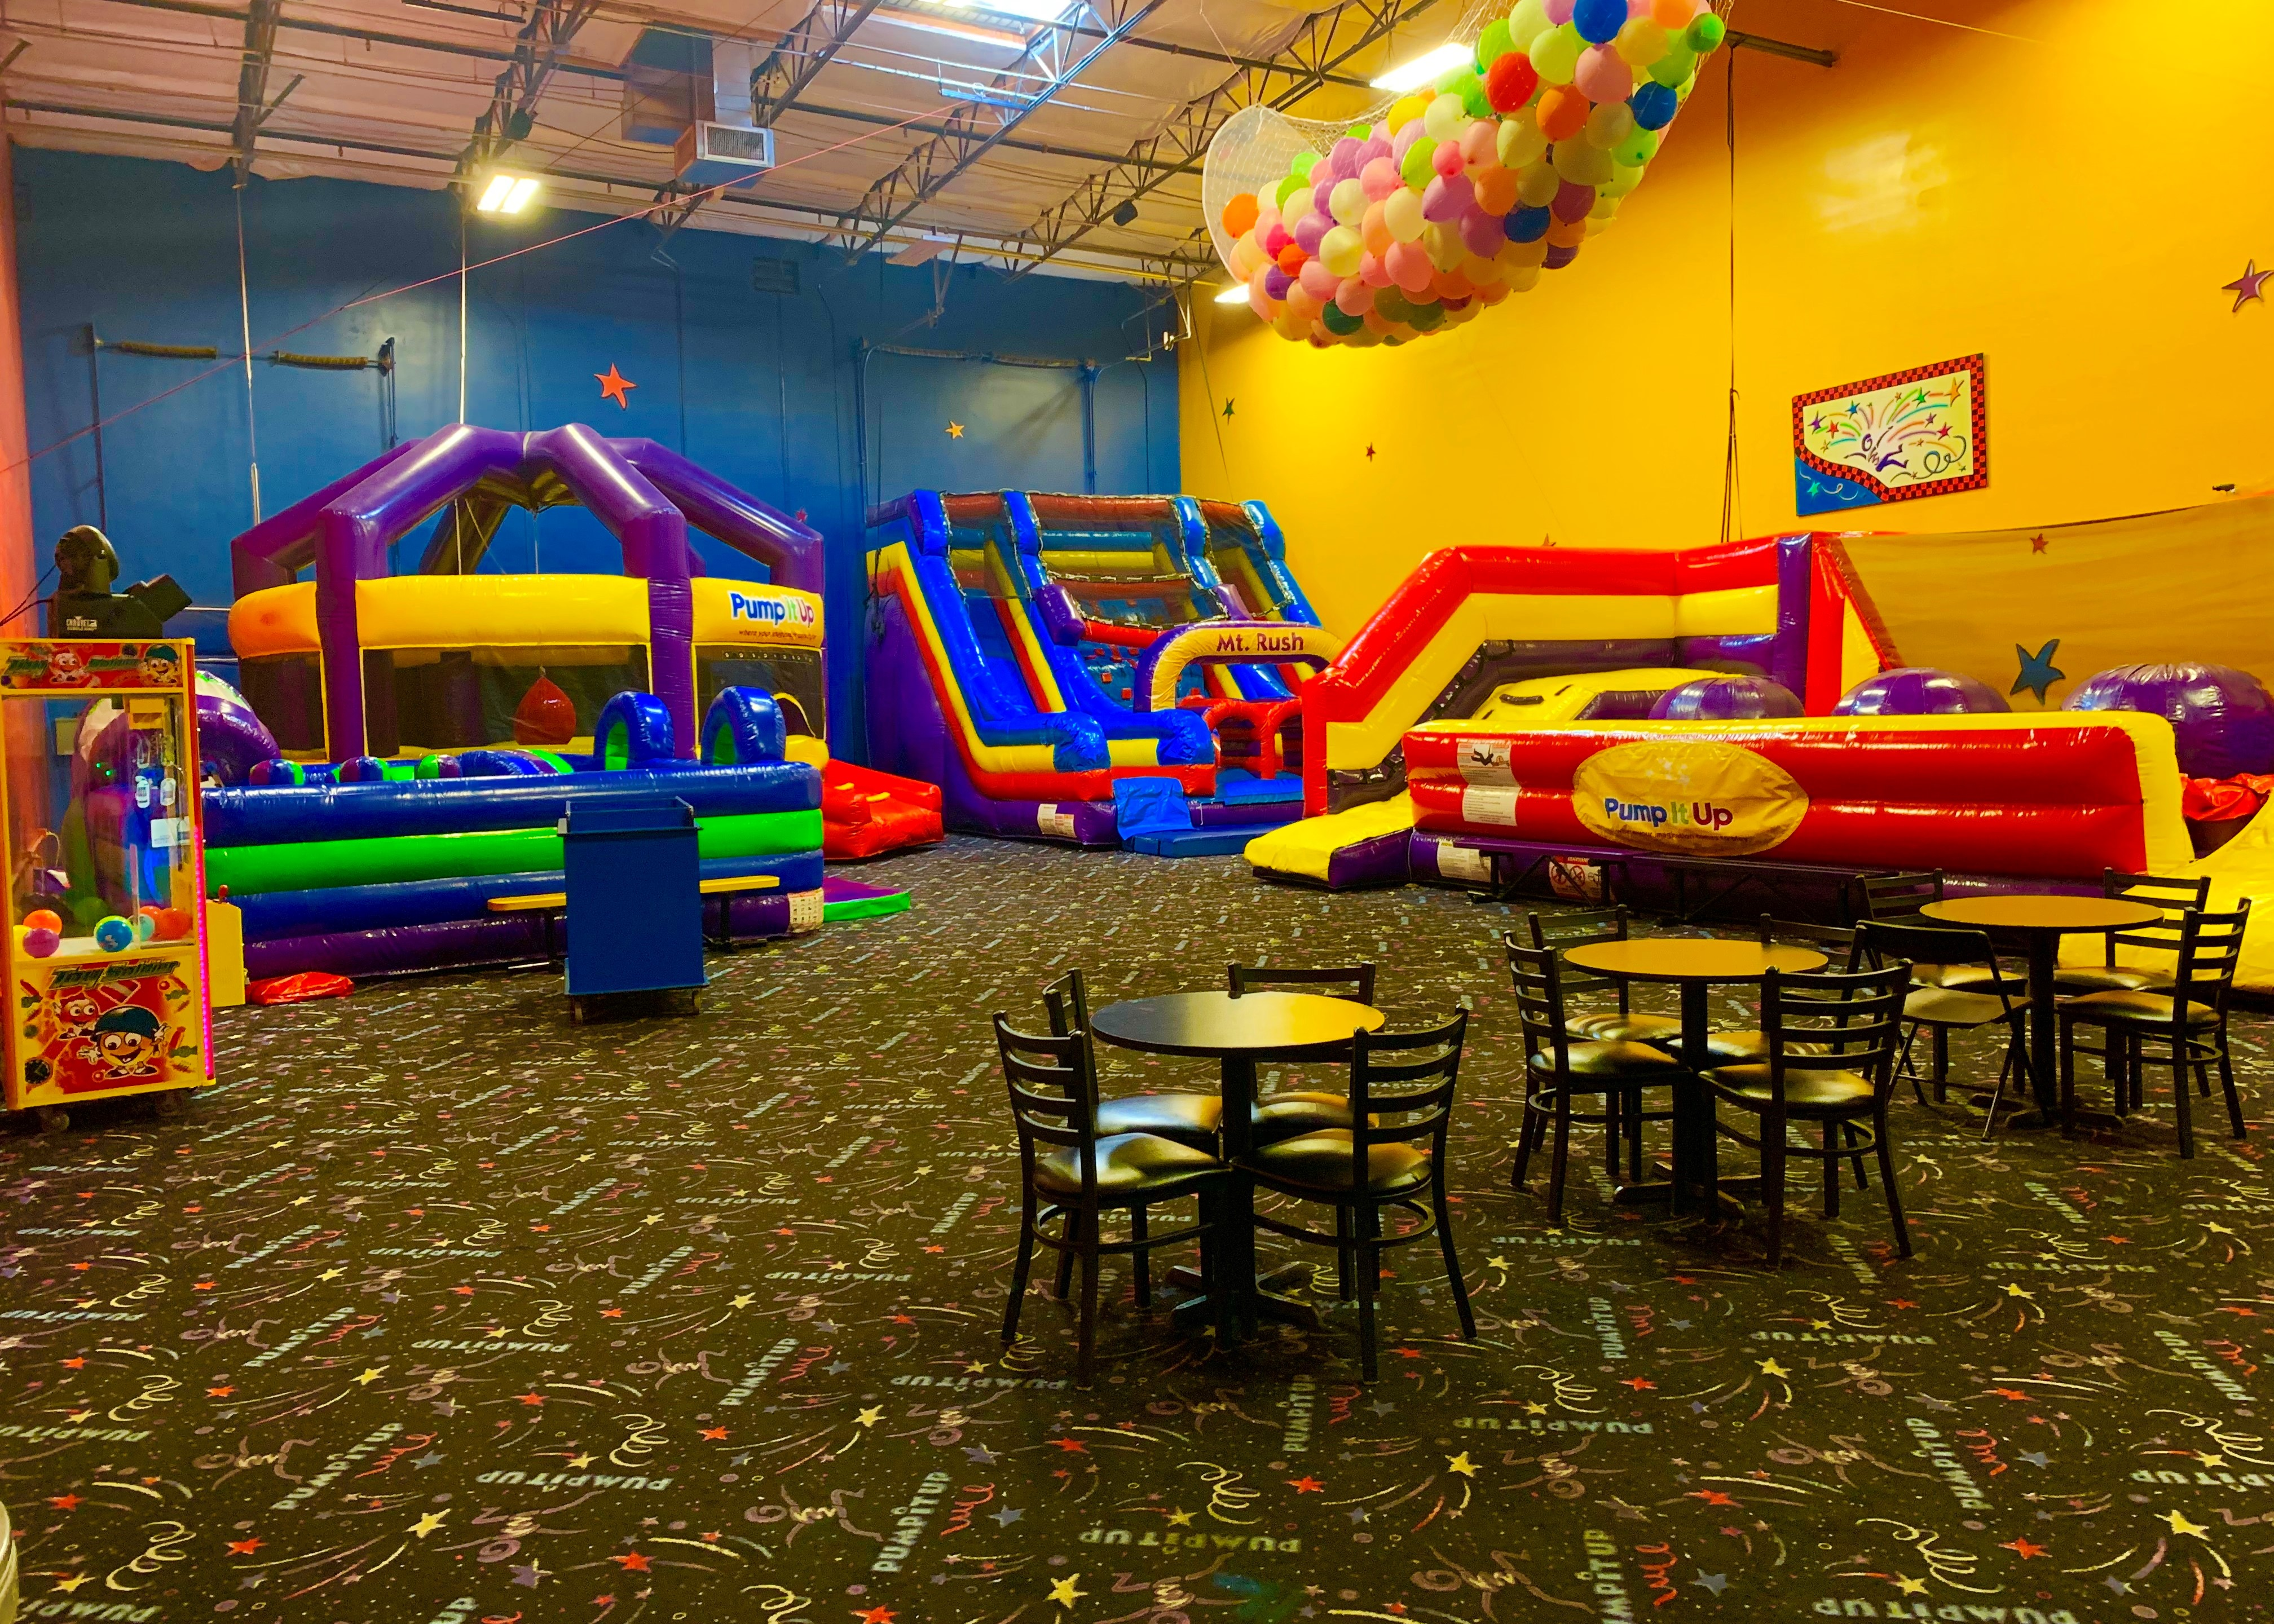 Pump It Up birthday party arena space with three large inflatable rides and tables with chairs for private parties.